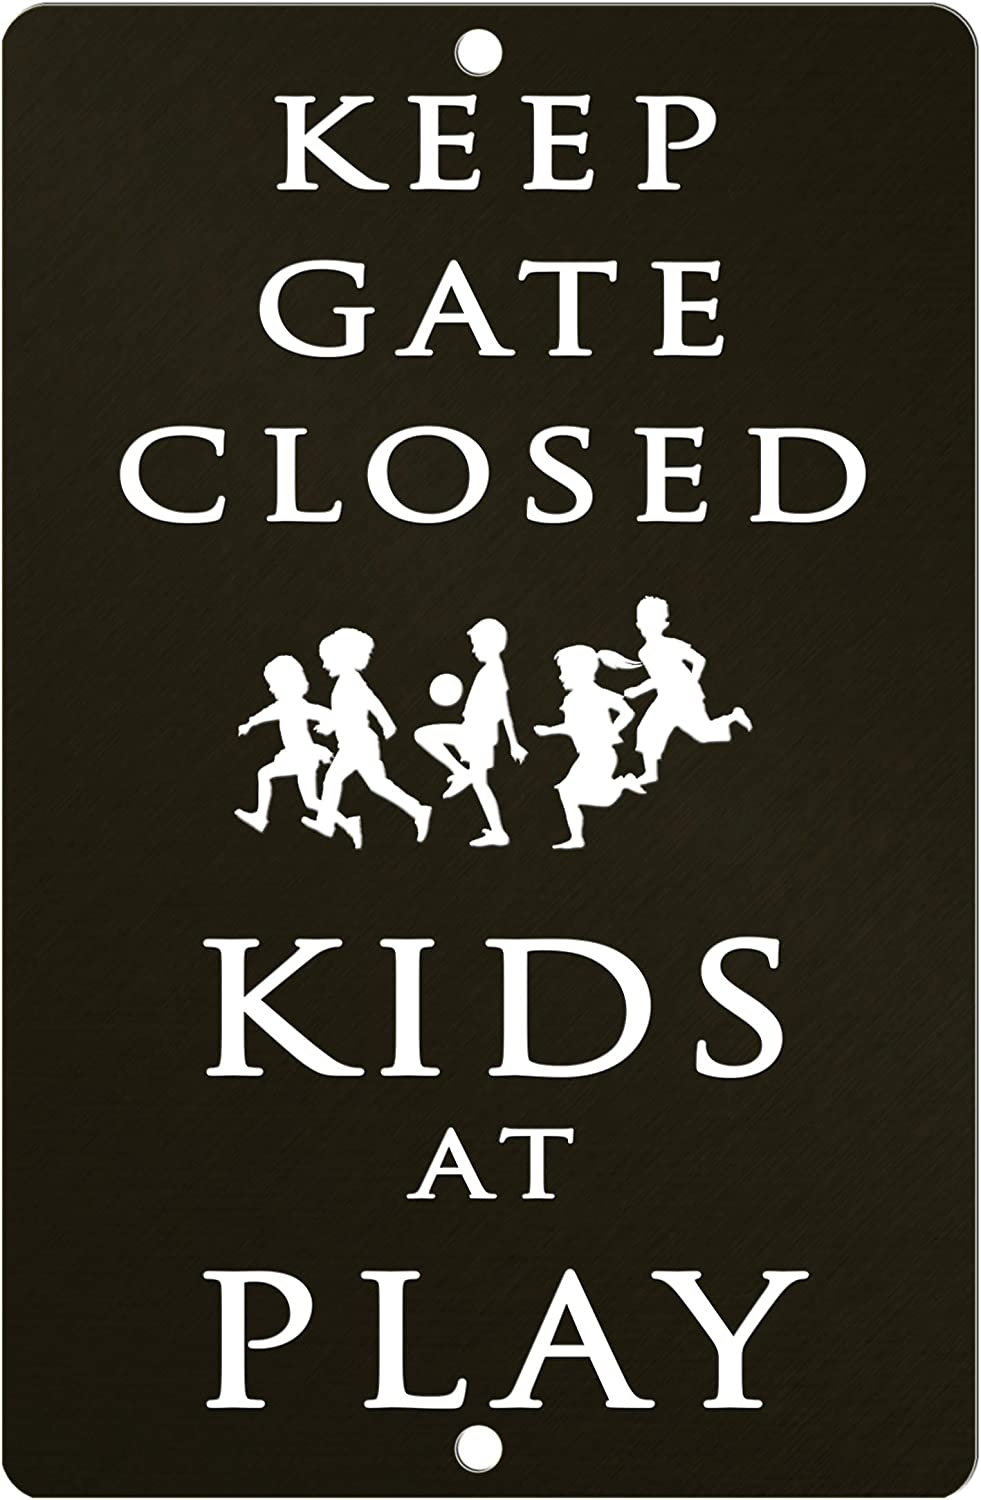 Keep Gate Closed Kids at Play - Decorative Novelty Indoor Outdoor Office Yard Fence Sign